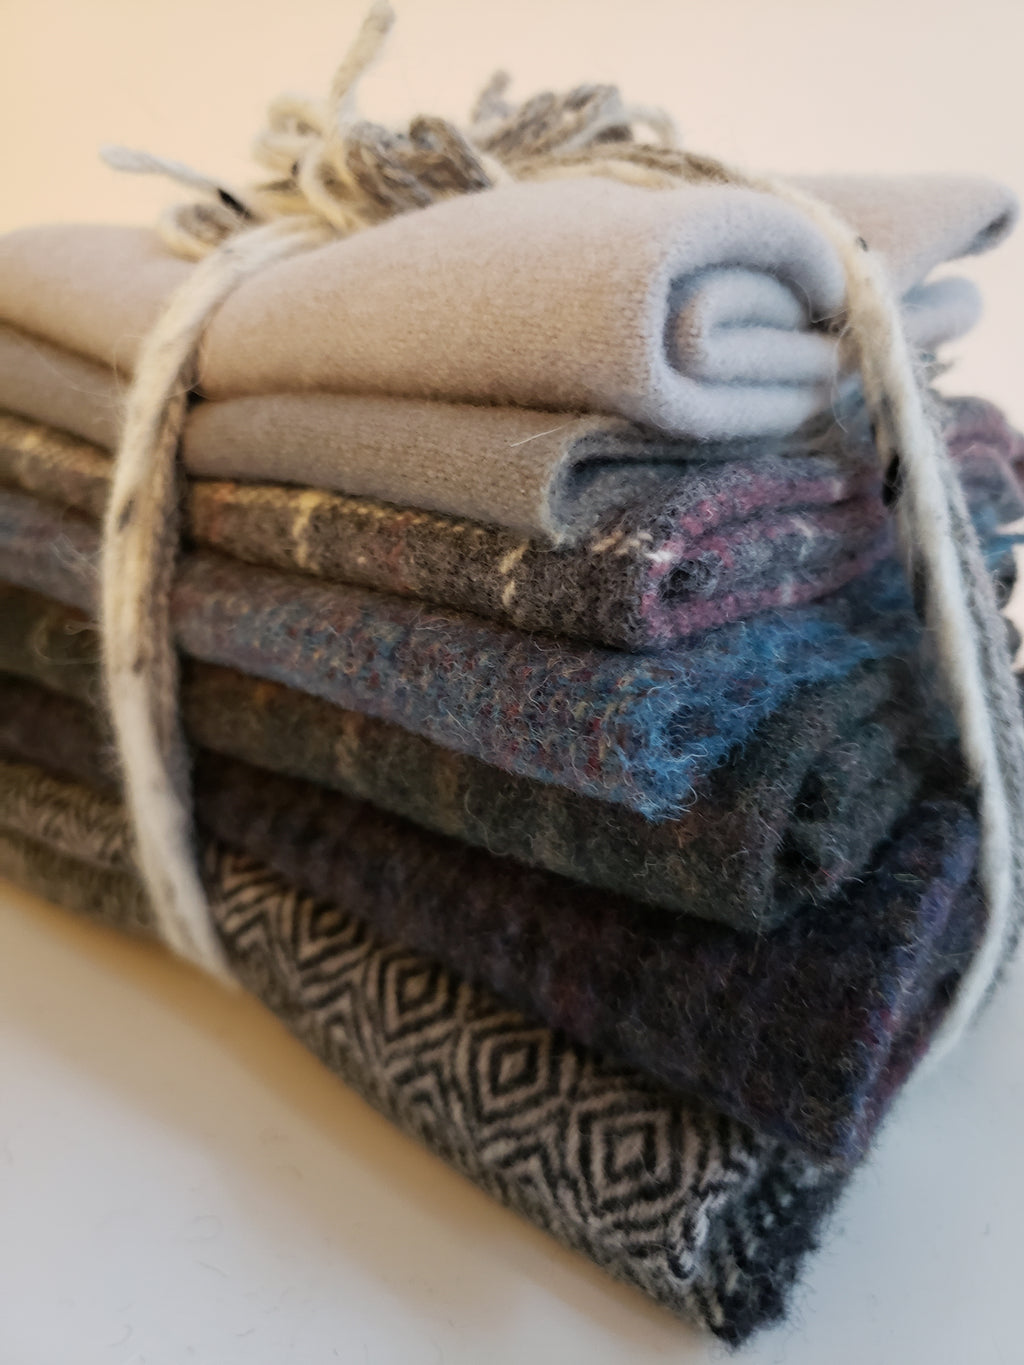 ROCKY SHORE - Shades of Grey Wool Bundle - 7/8 yard - 100% Wool for Rug Hooking & Wool Applique - RSS203